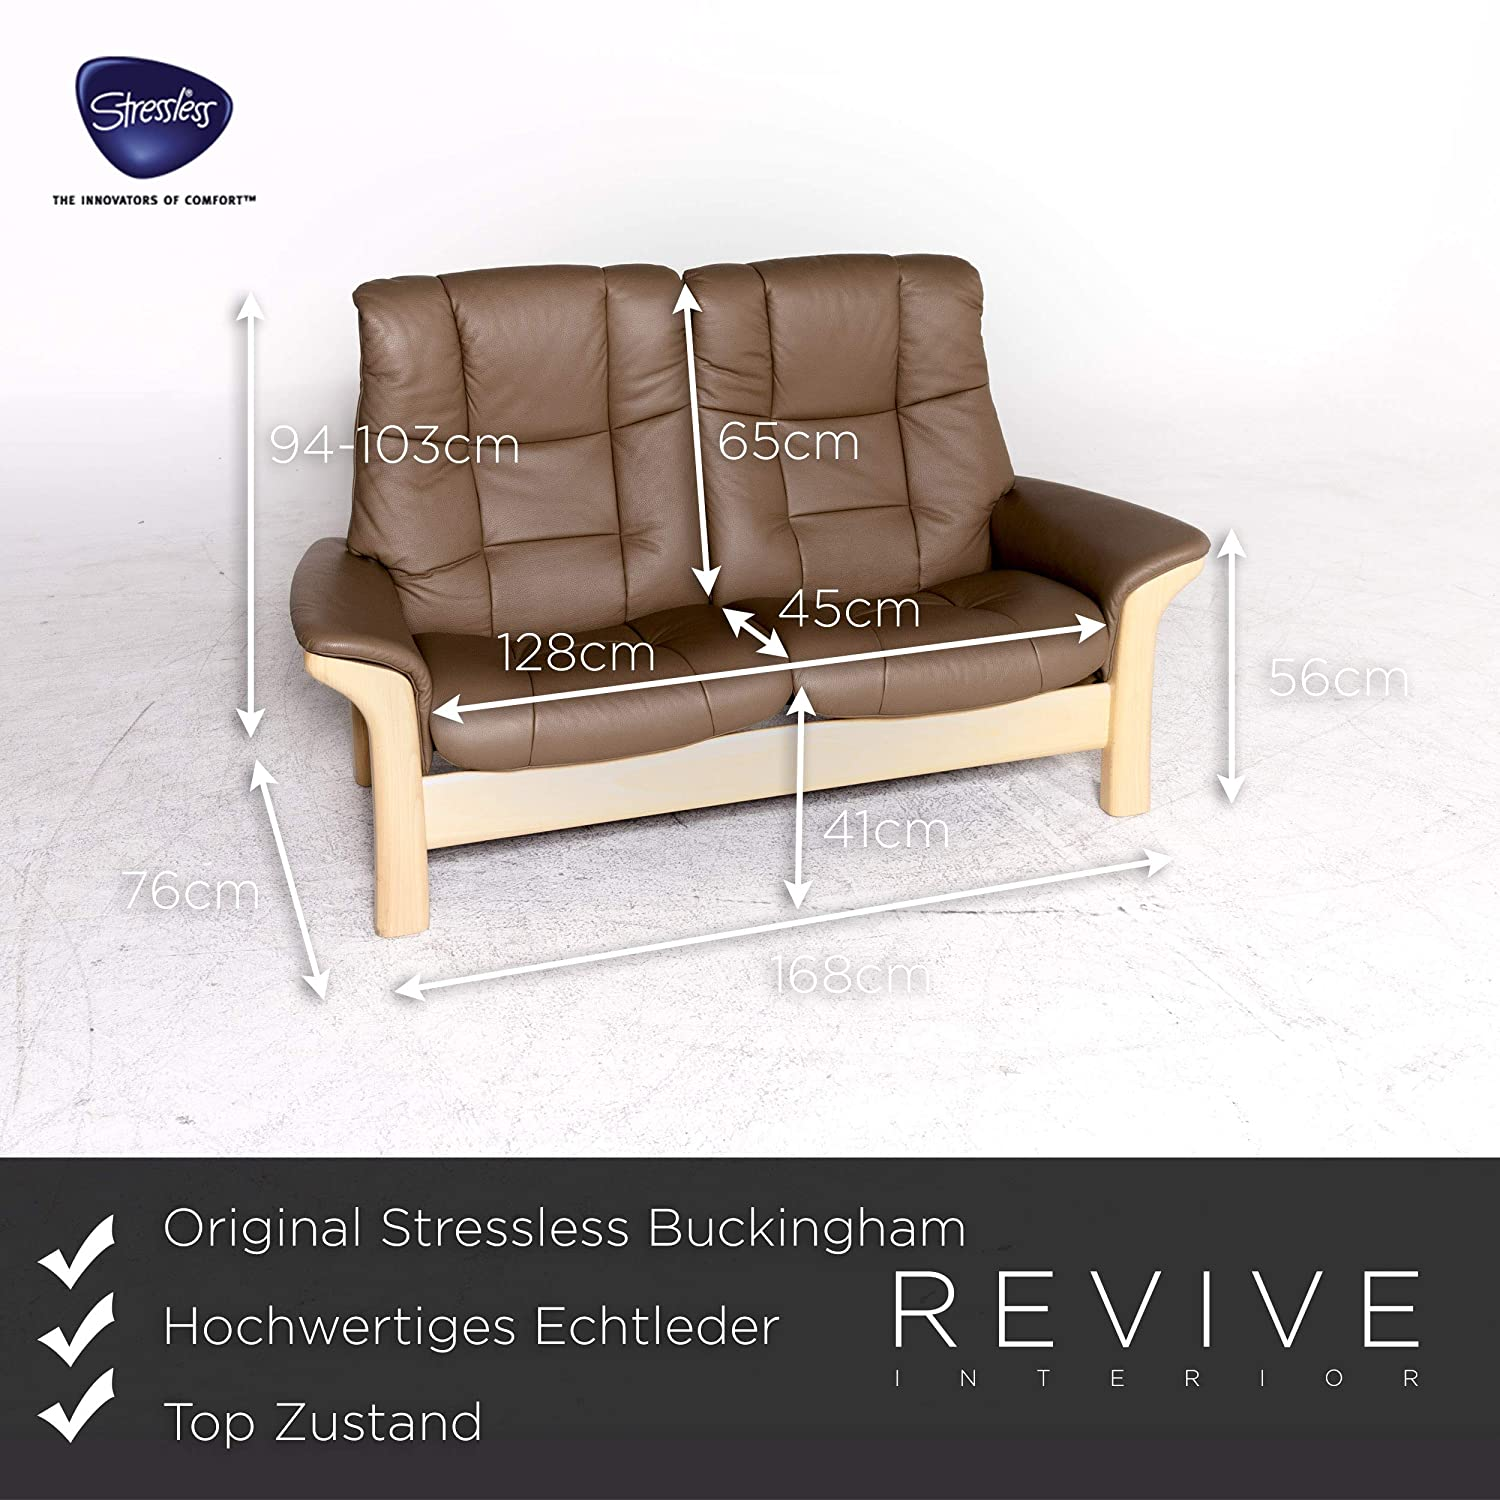 Amazon.com: Stressless Buckingham Designer Leather Sofa ...